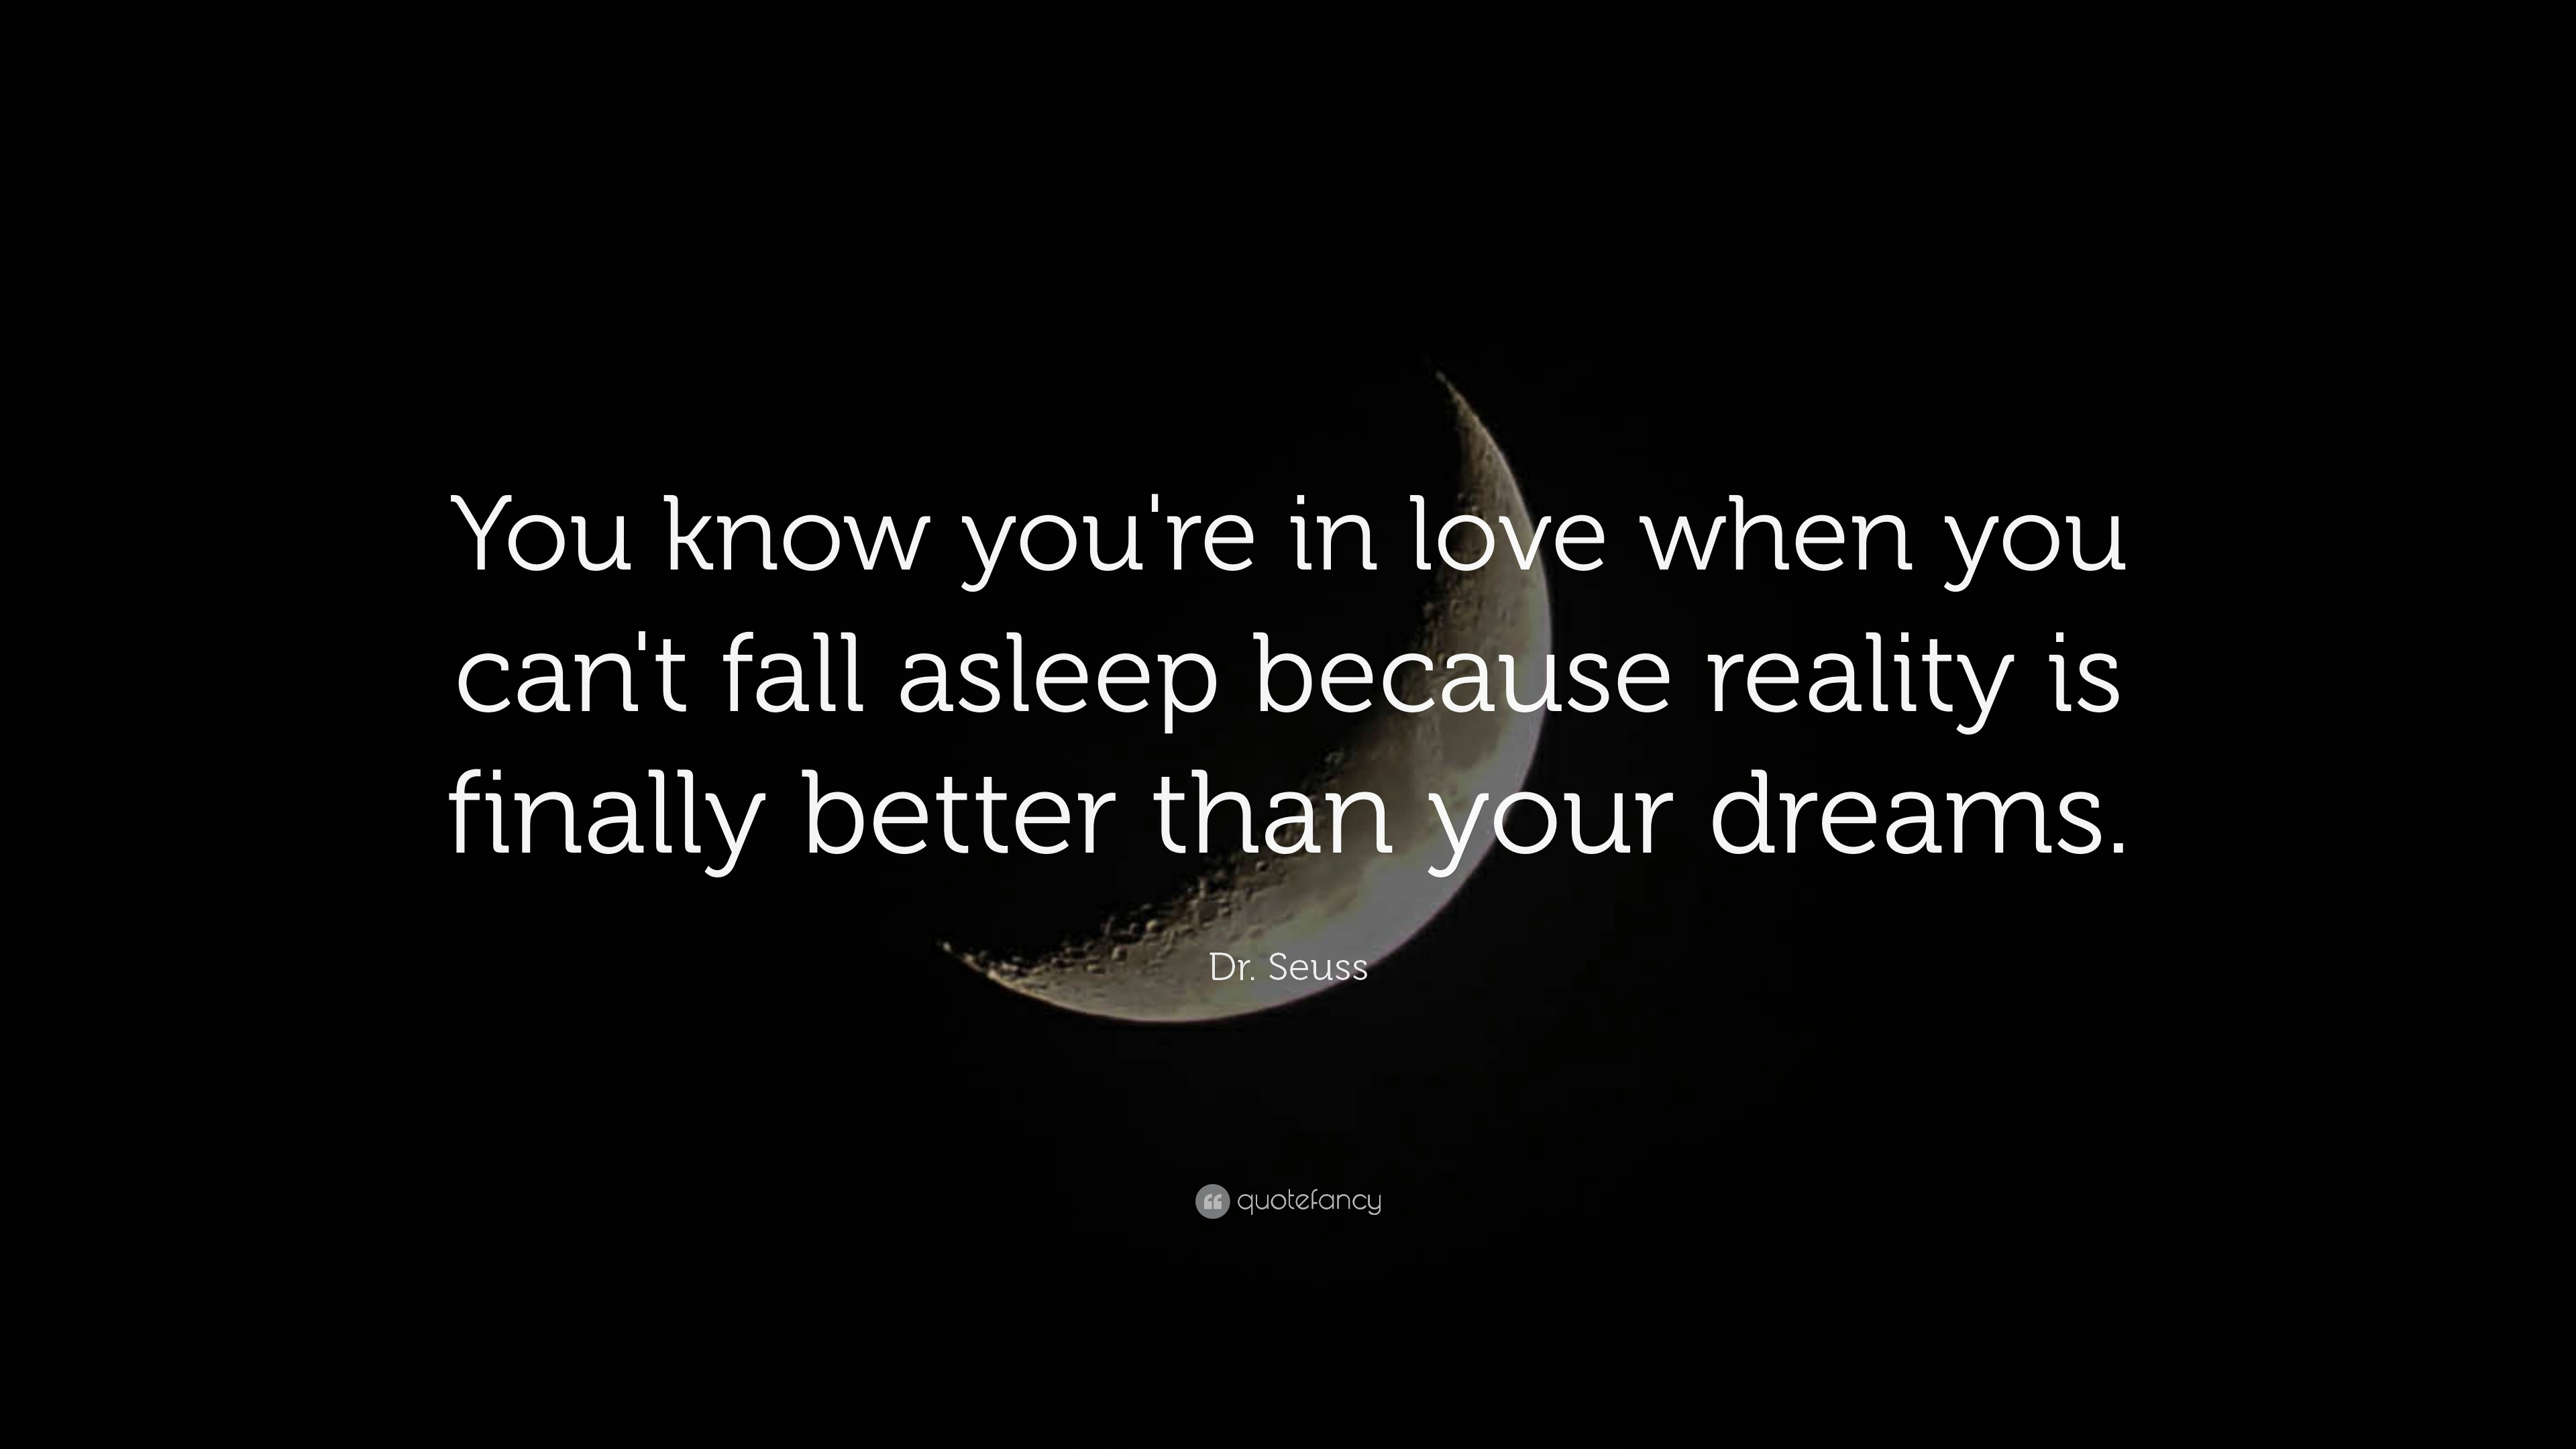 Dr seuss quote you know youre in love when you cant fall asleep dr seuss quote you know youre in love when you can altavistaventures Images